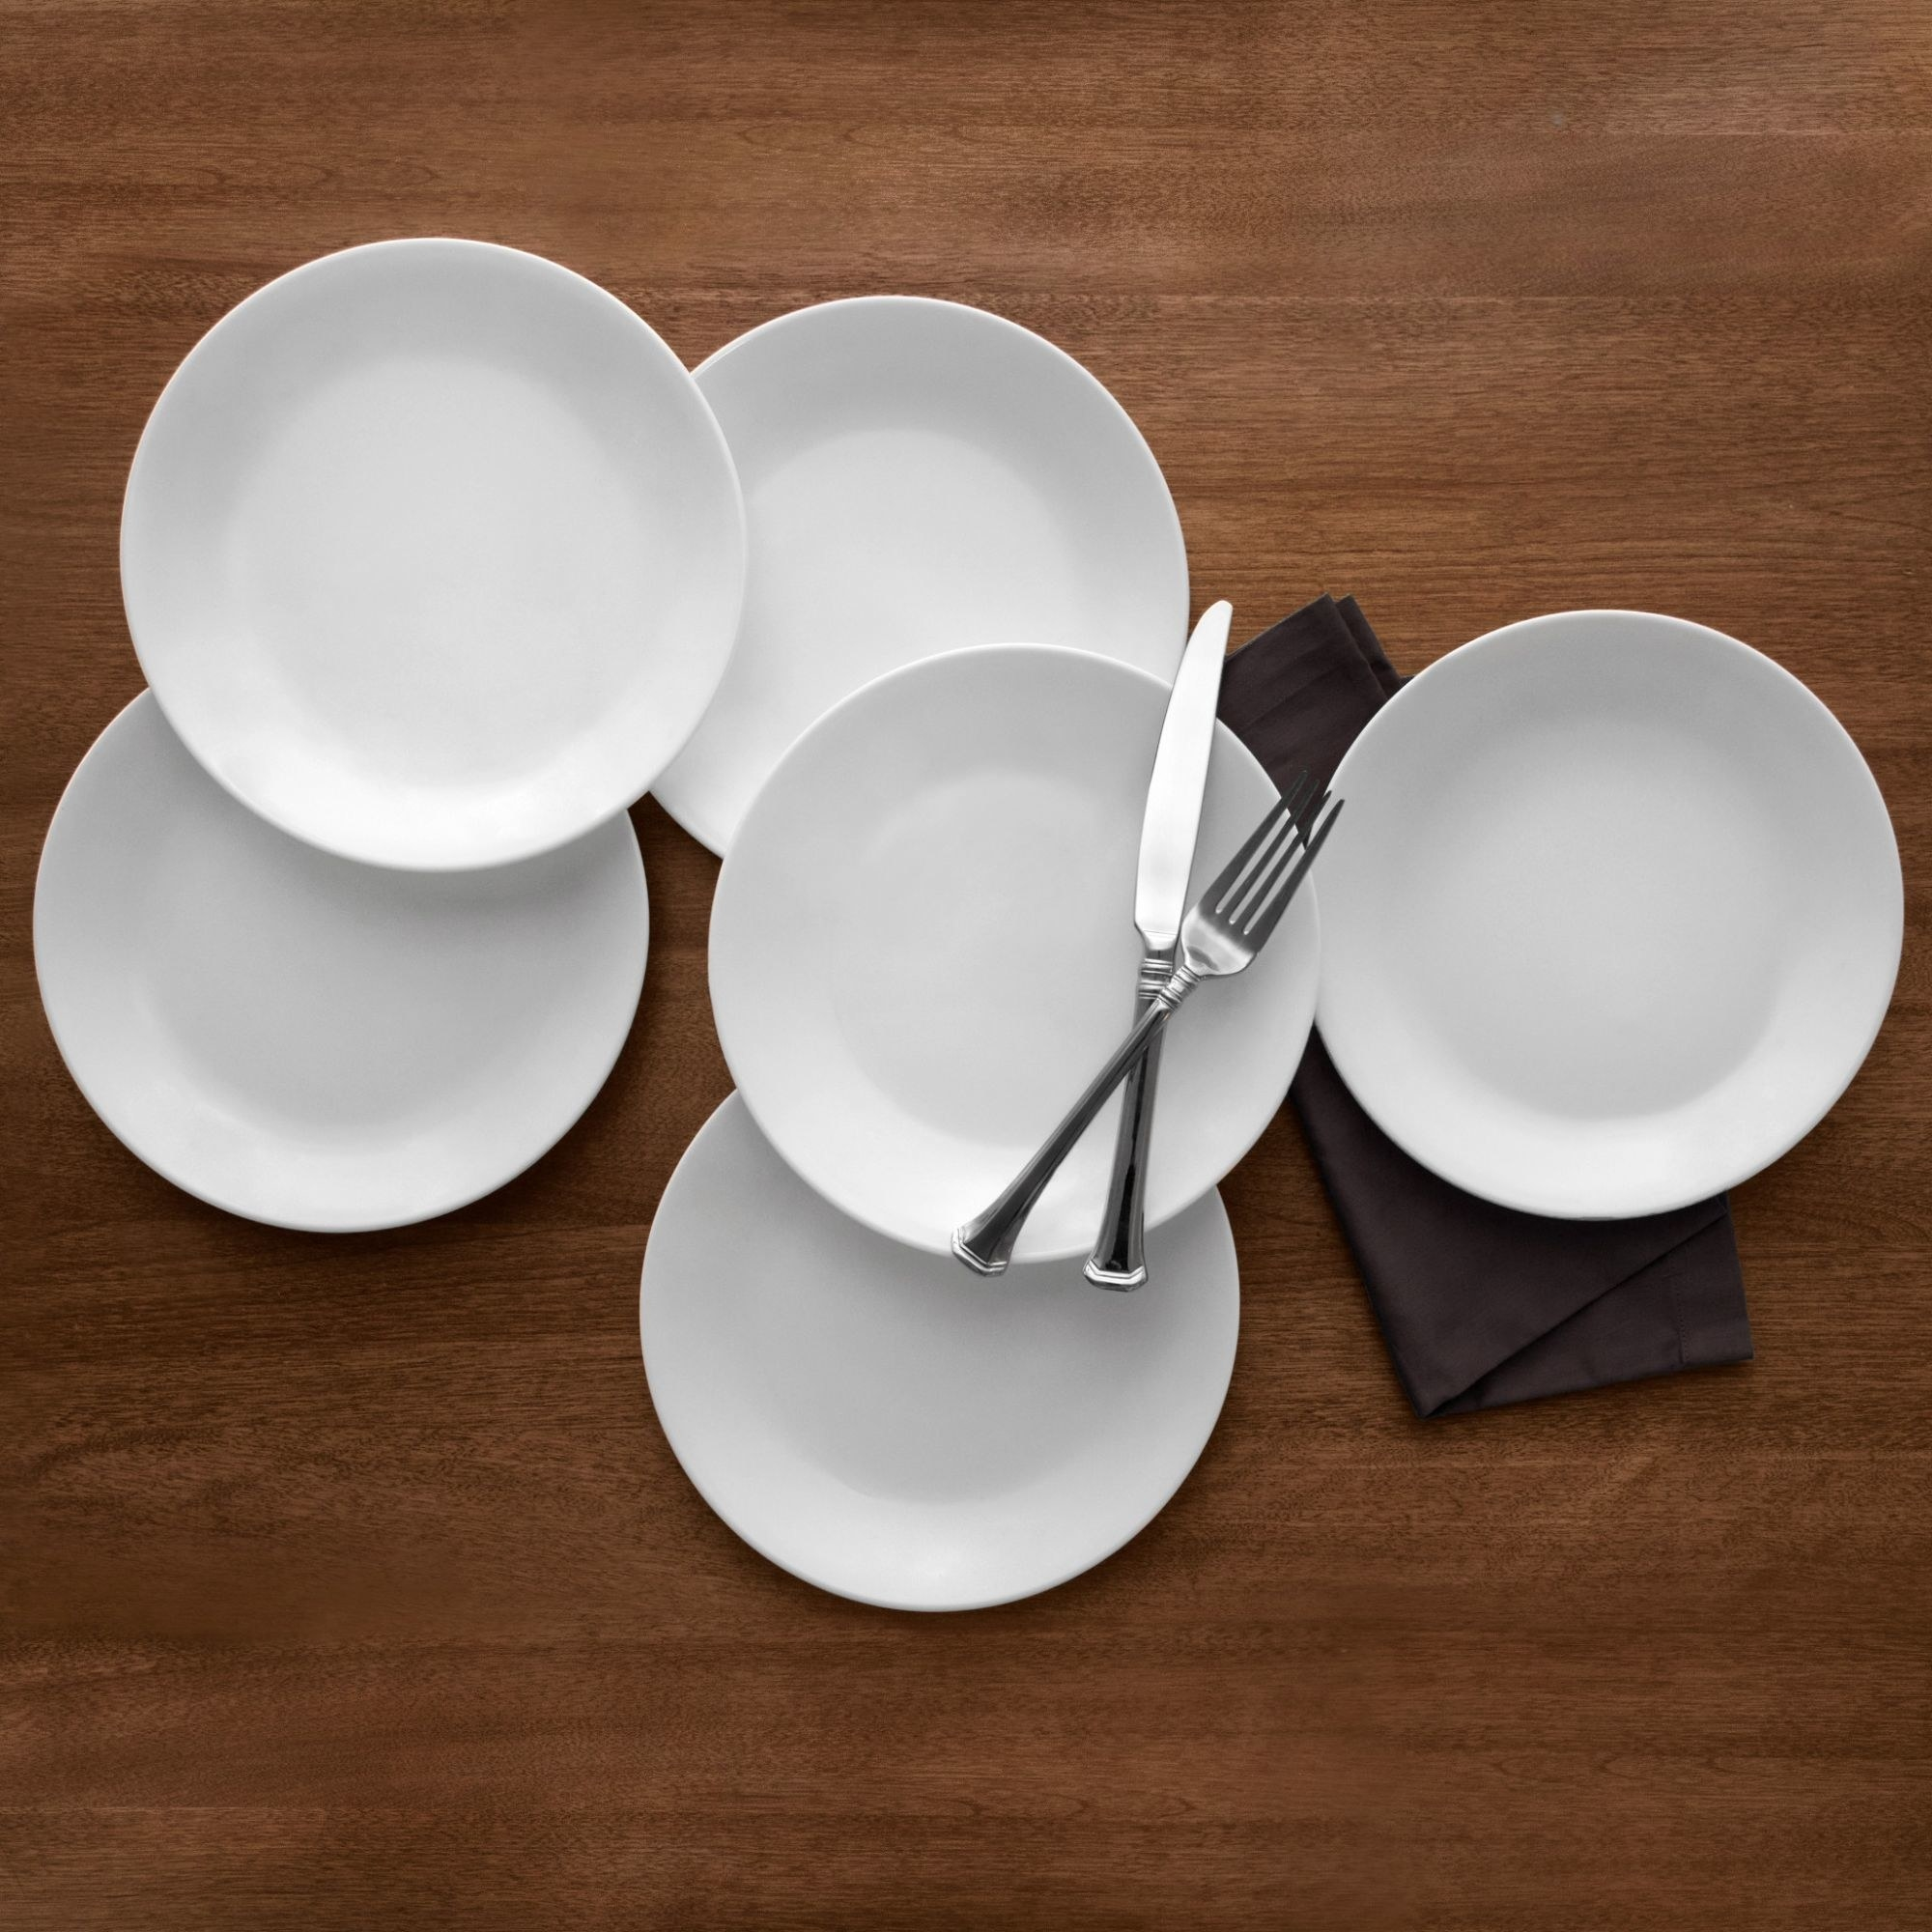 six white dinner plates on a table with a fork and knife on top